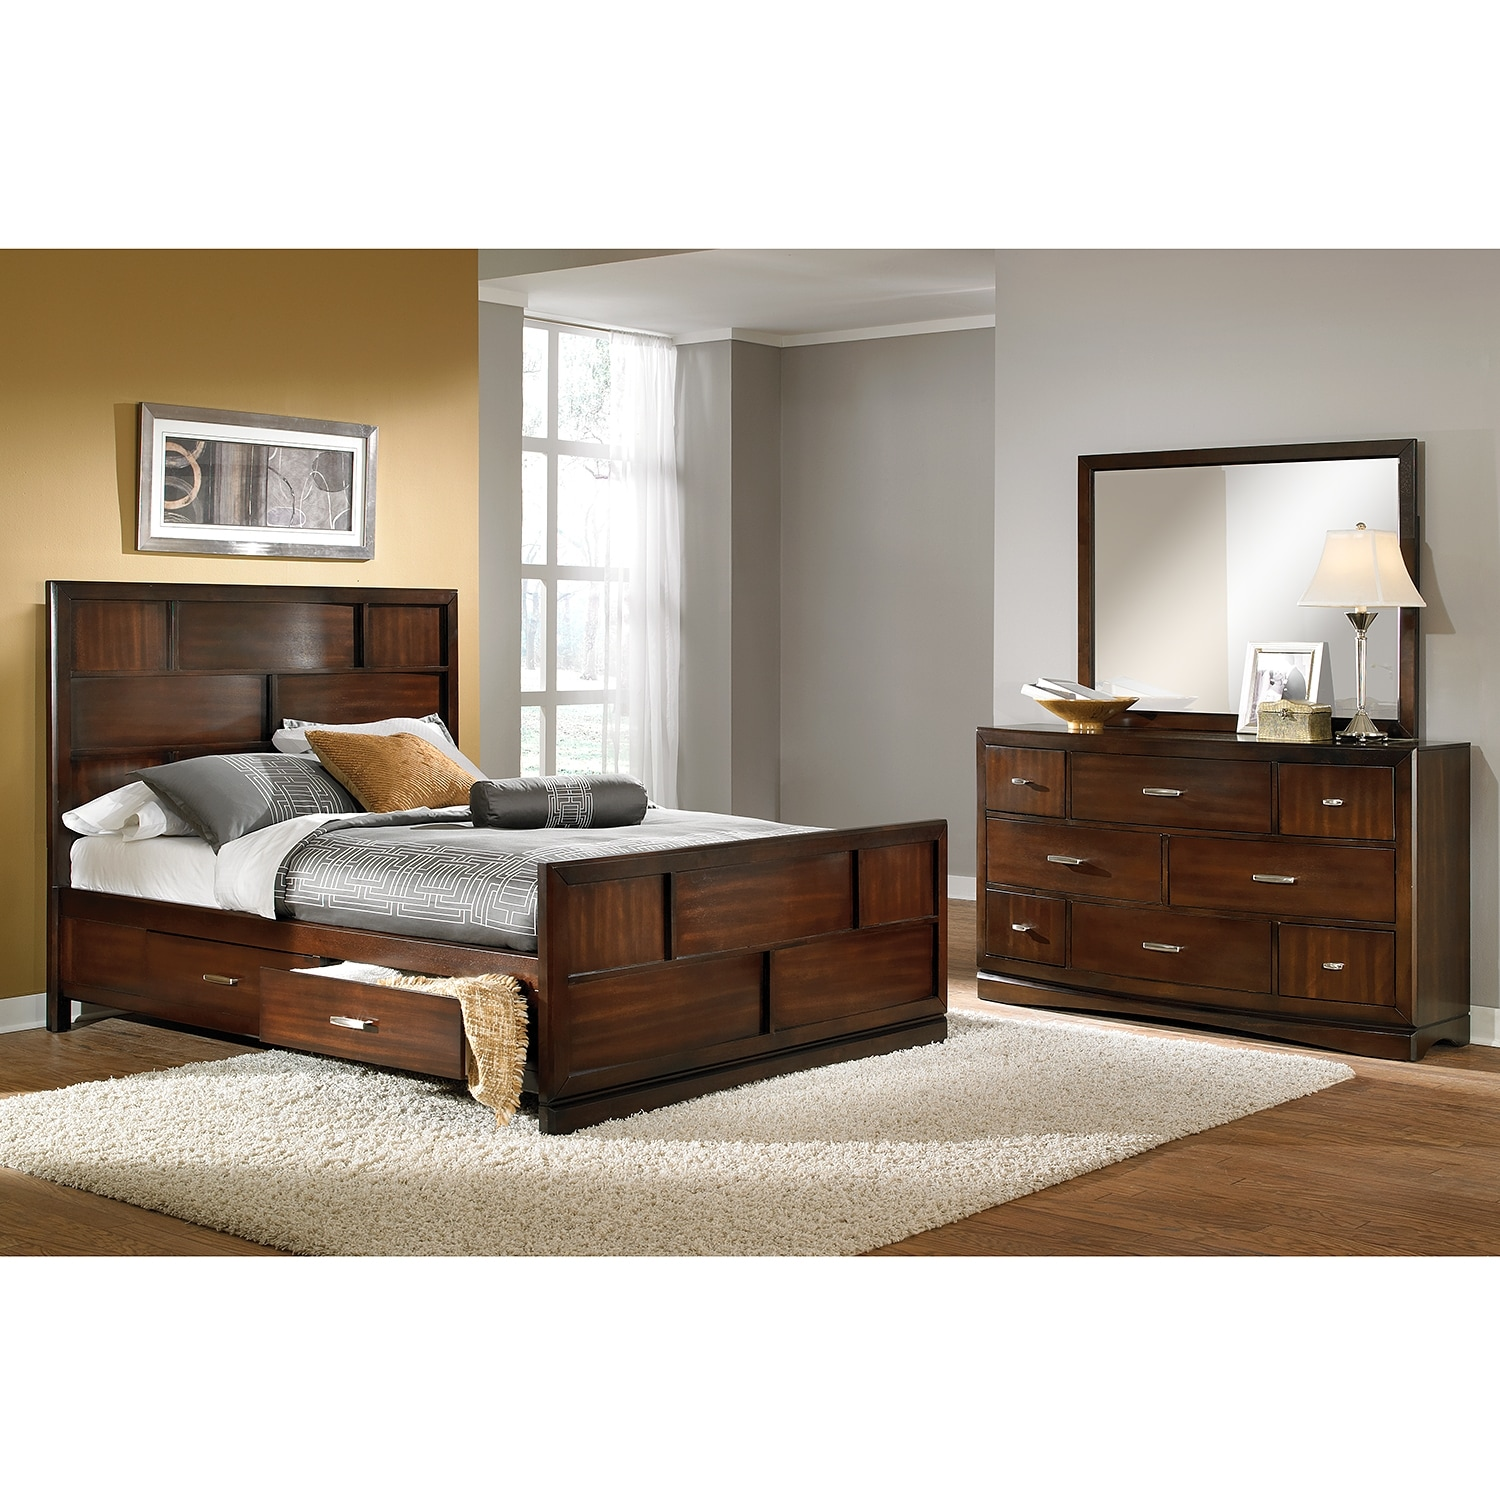 Toronto 5-Piece King Storage Bedroom Set - Pecan